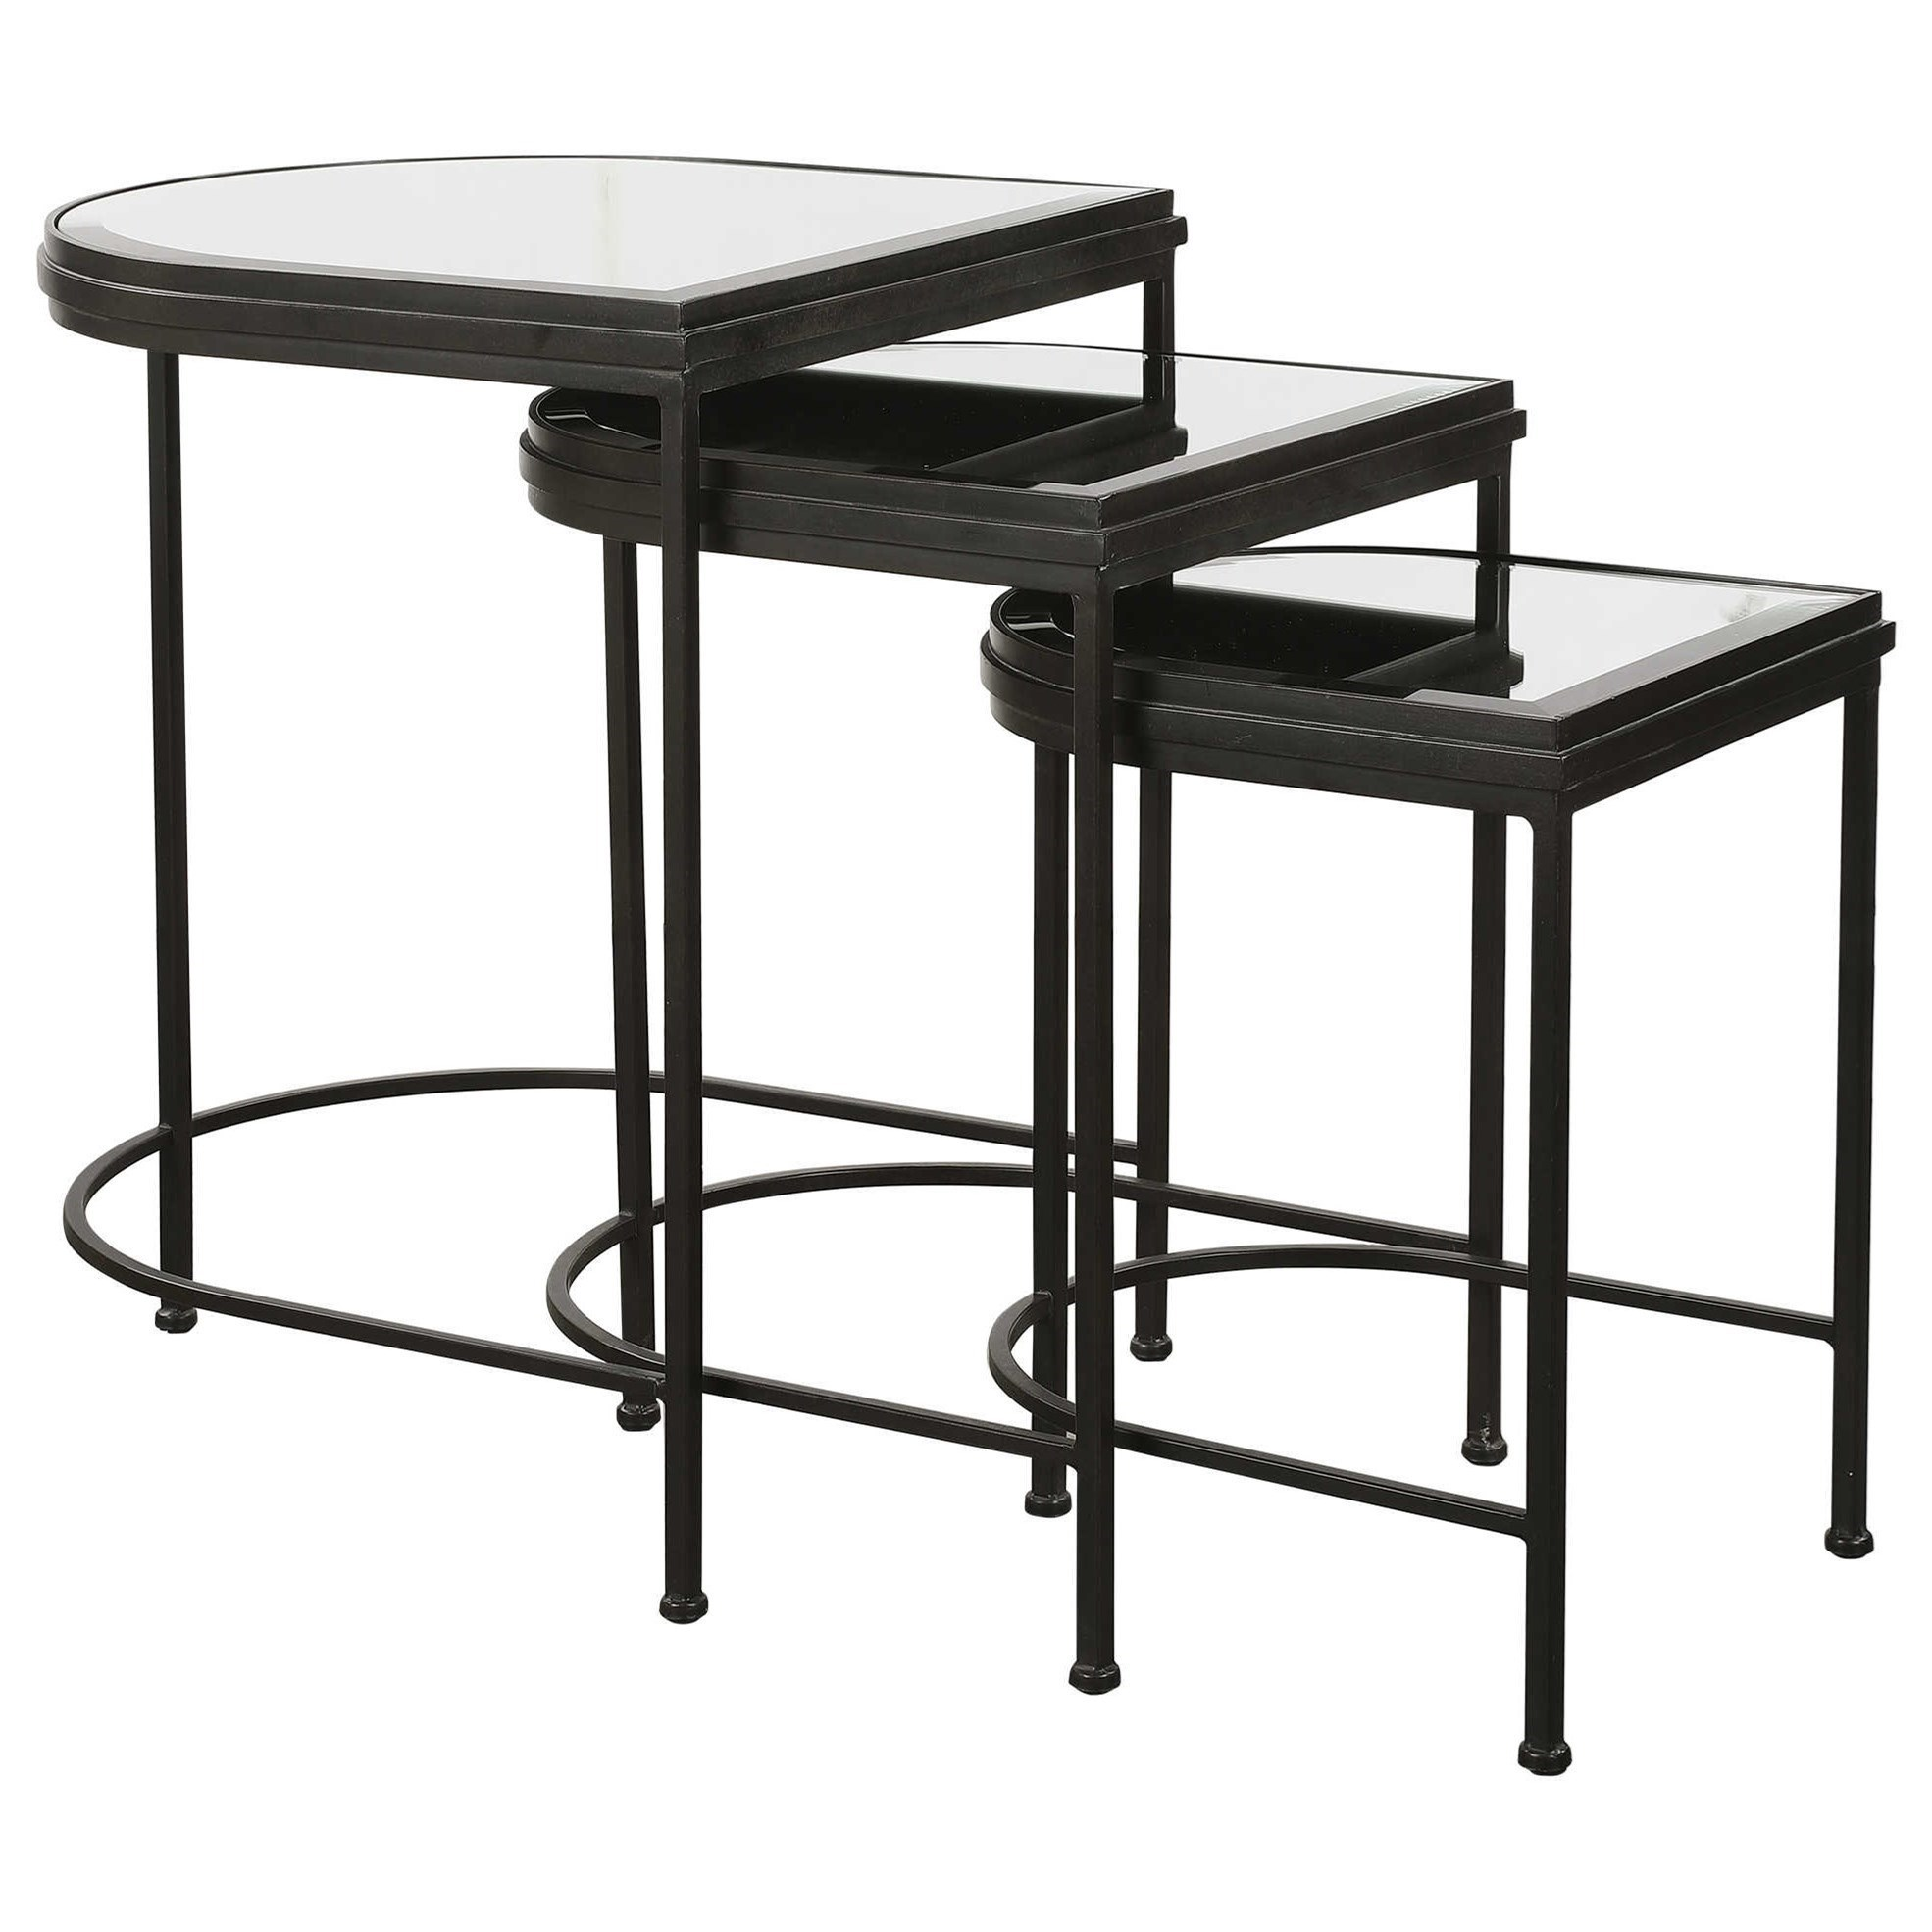 Accent Furniture - Occasional Tables Black Nesting Tables, S/3 by Uttermost at Upper Room Home Furnishings